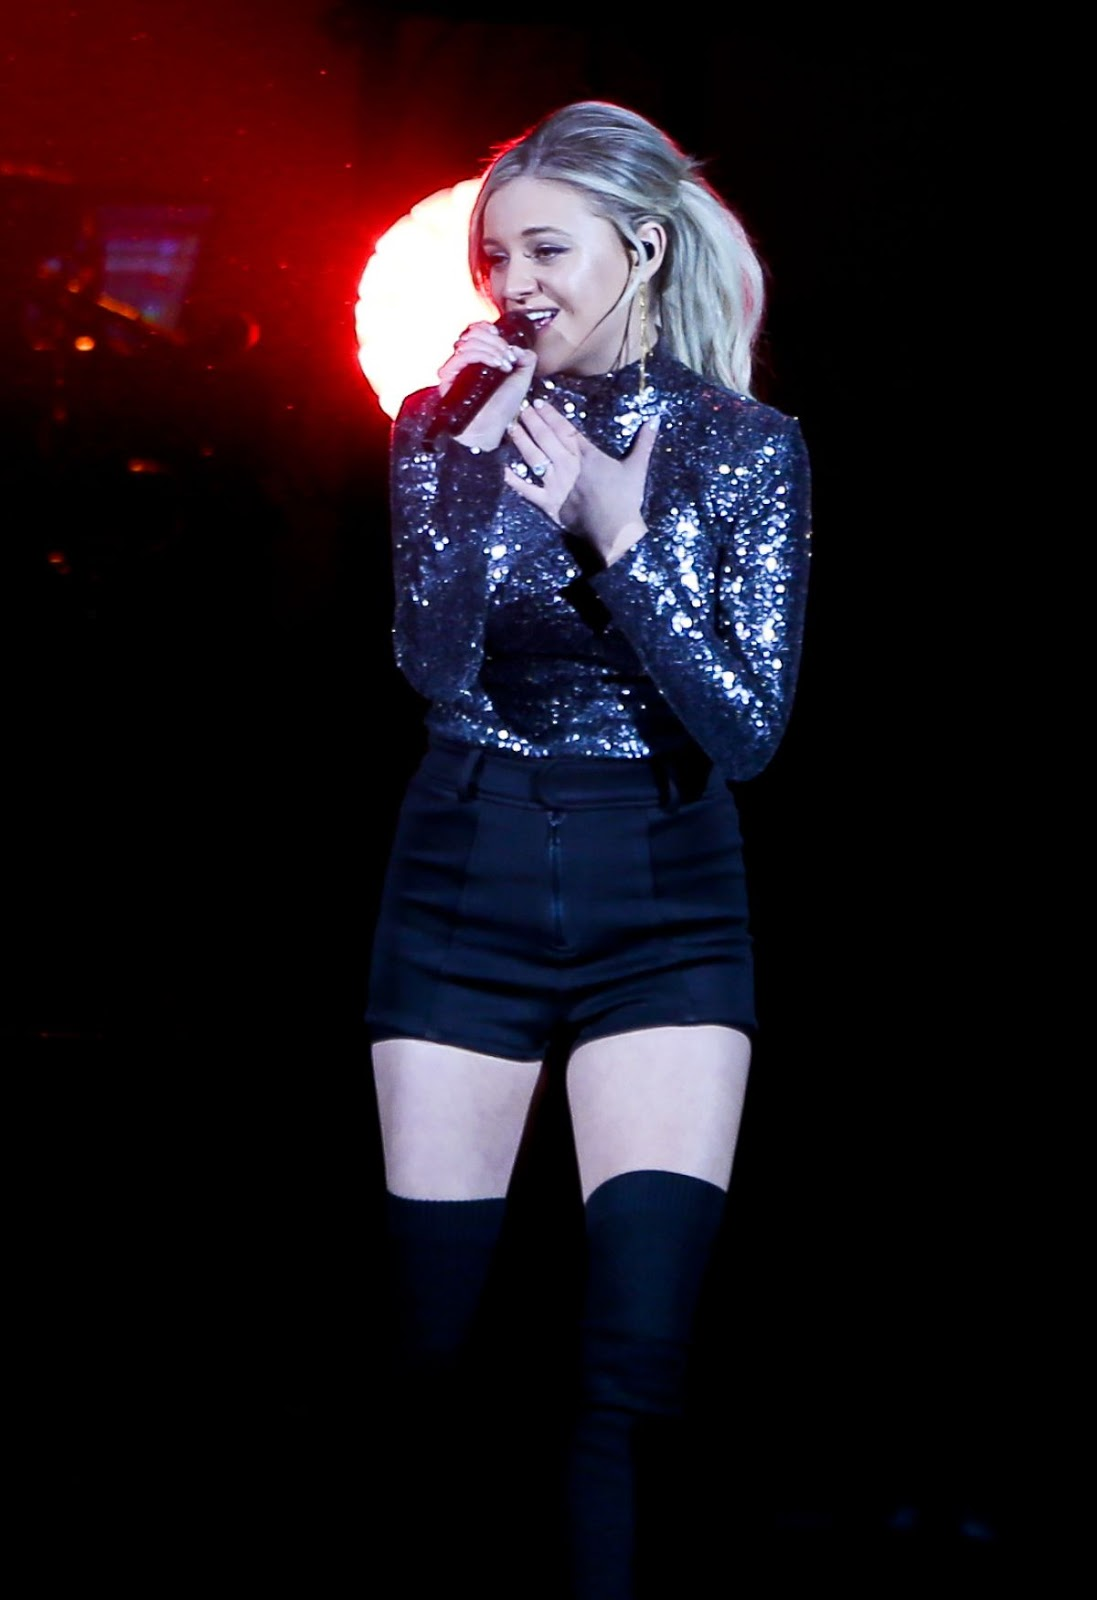 Kelsea Ballerini Performs at a Concert at Long Island in New York - 03/07/2019